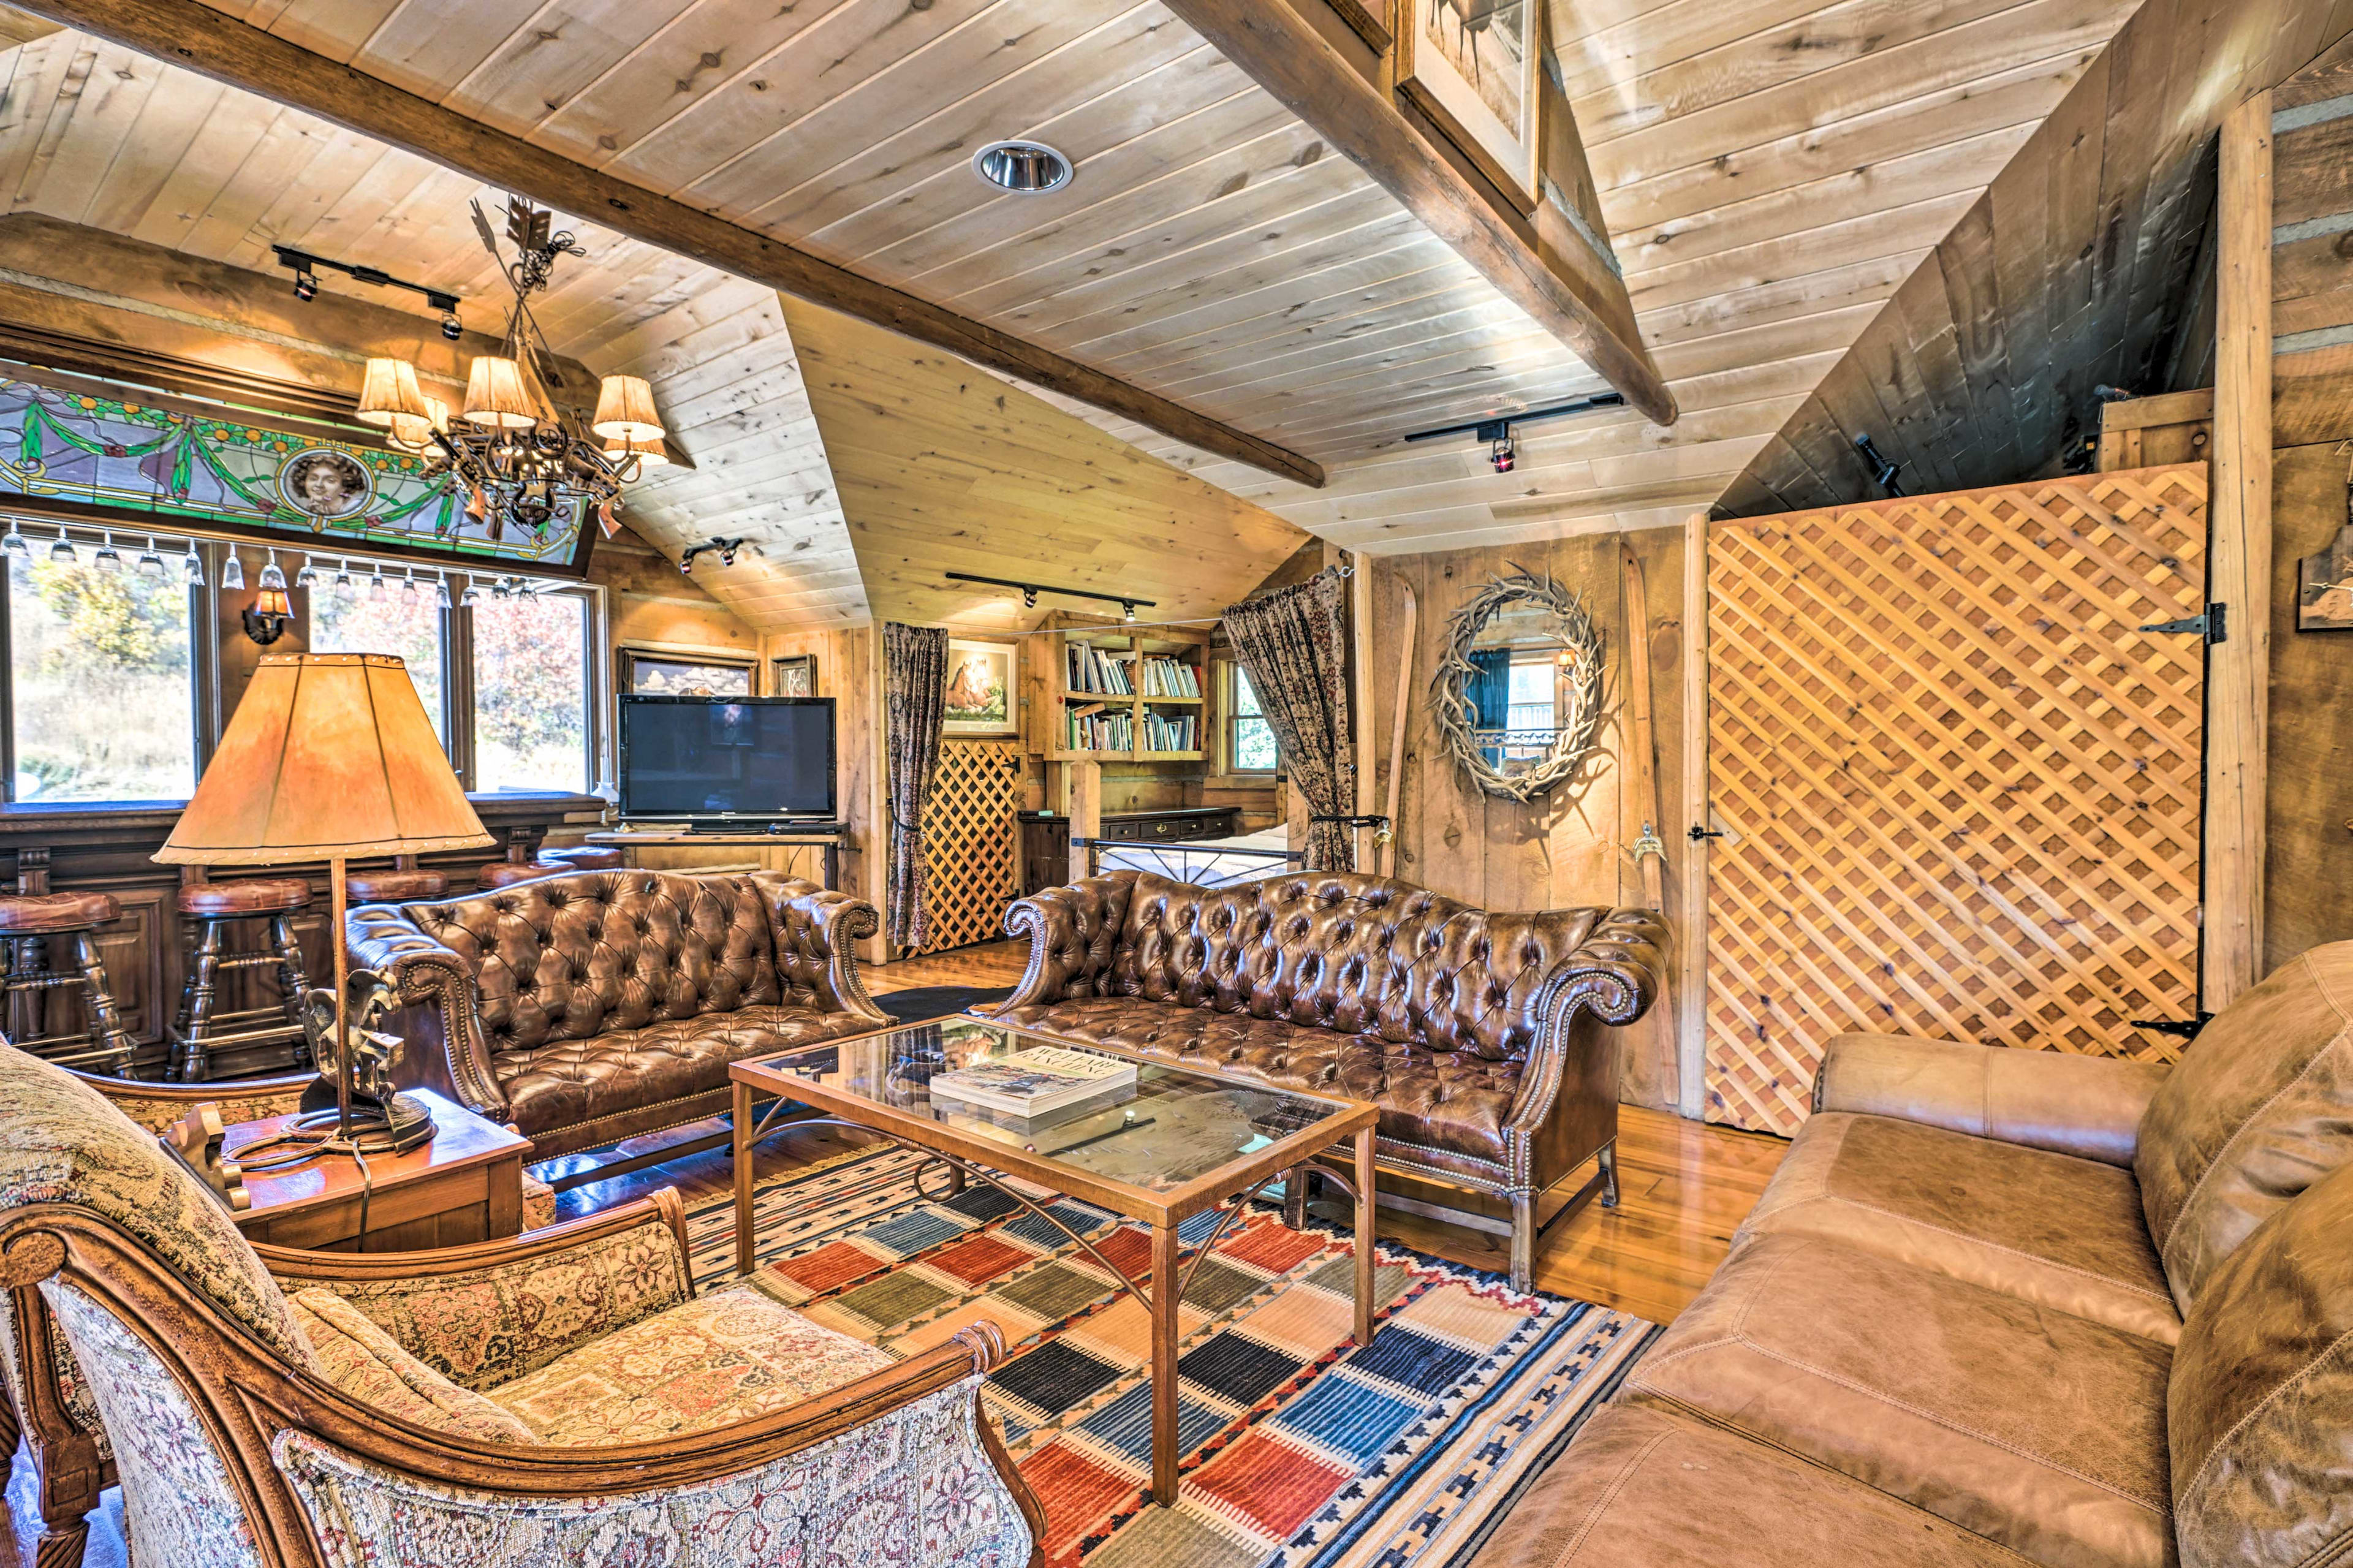 Lounge on the comfortable furnishings in the living area.